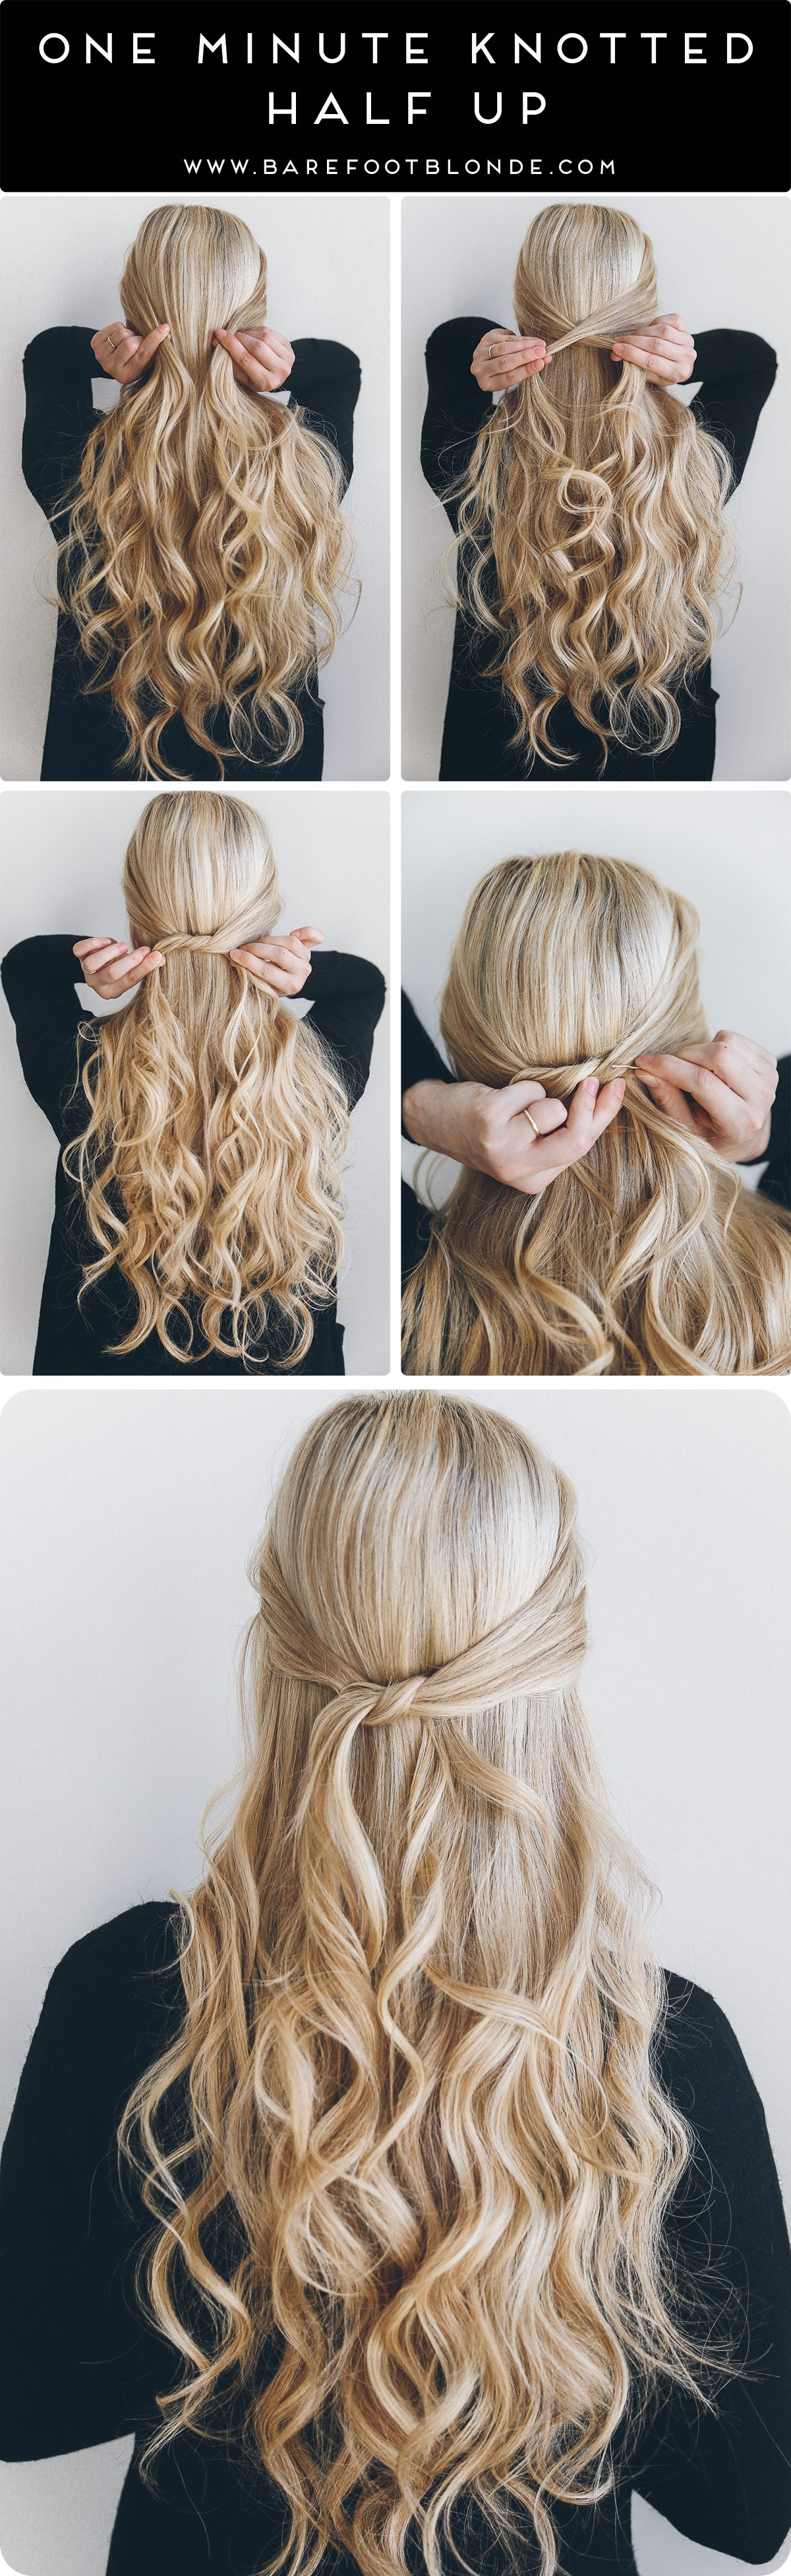 Barefoot Blonde One Minute Knotted Half Up